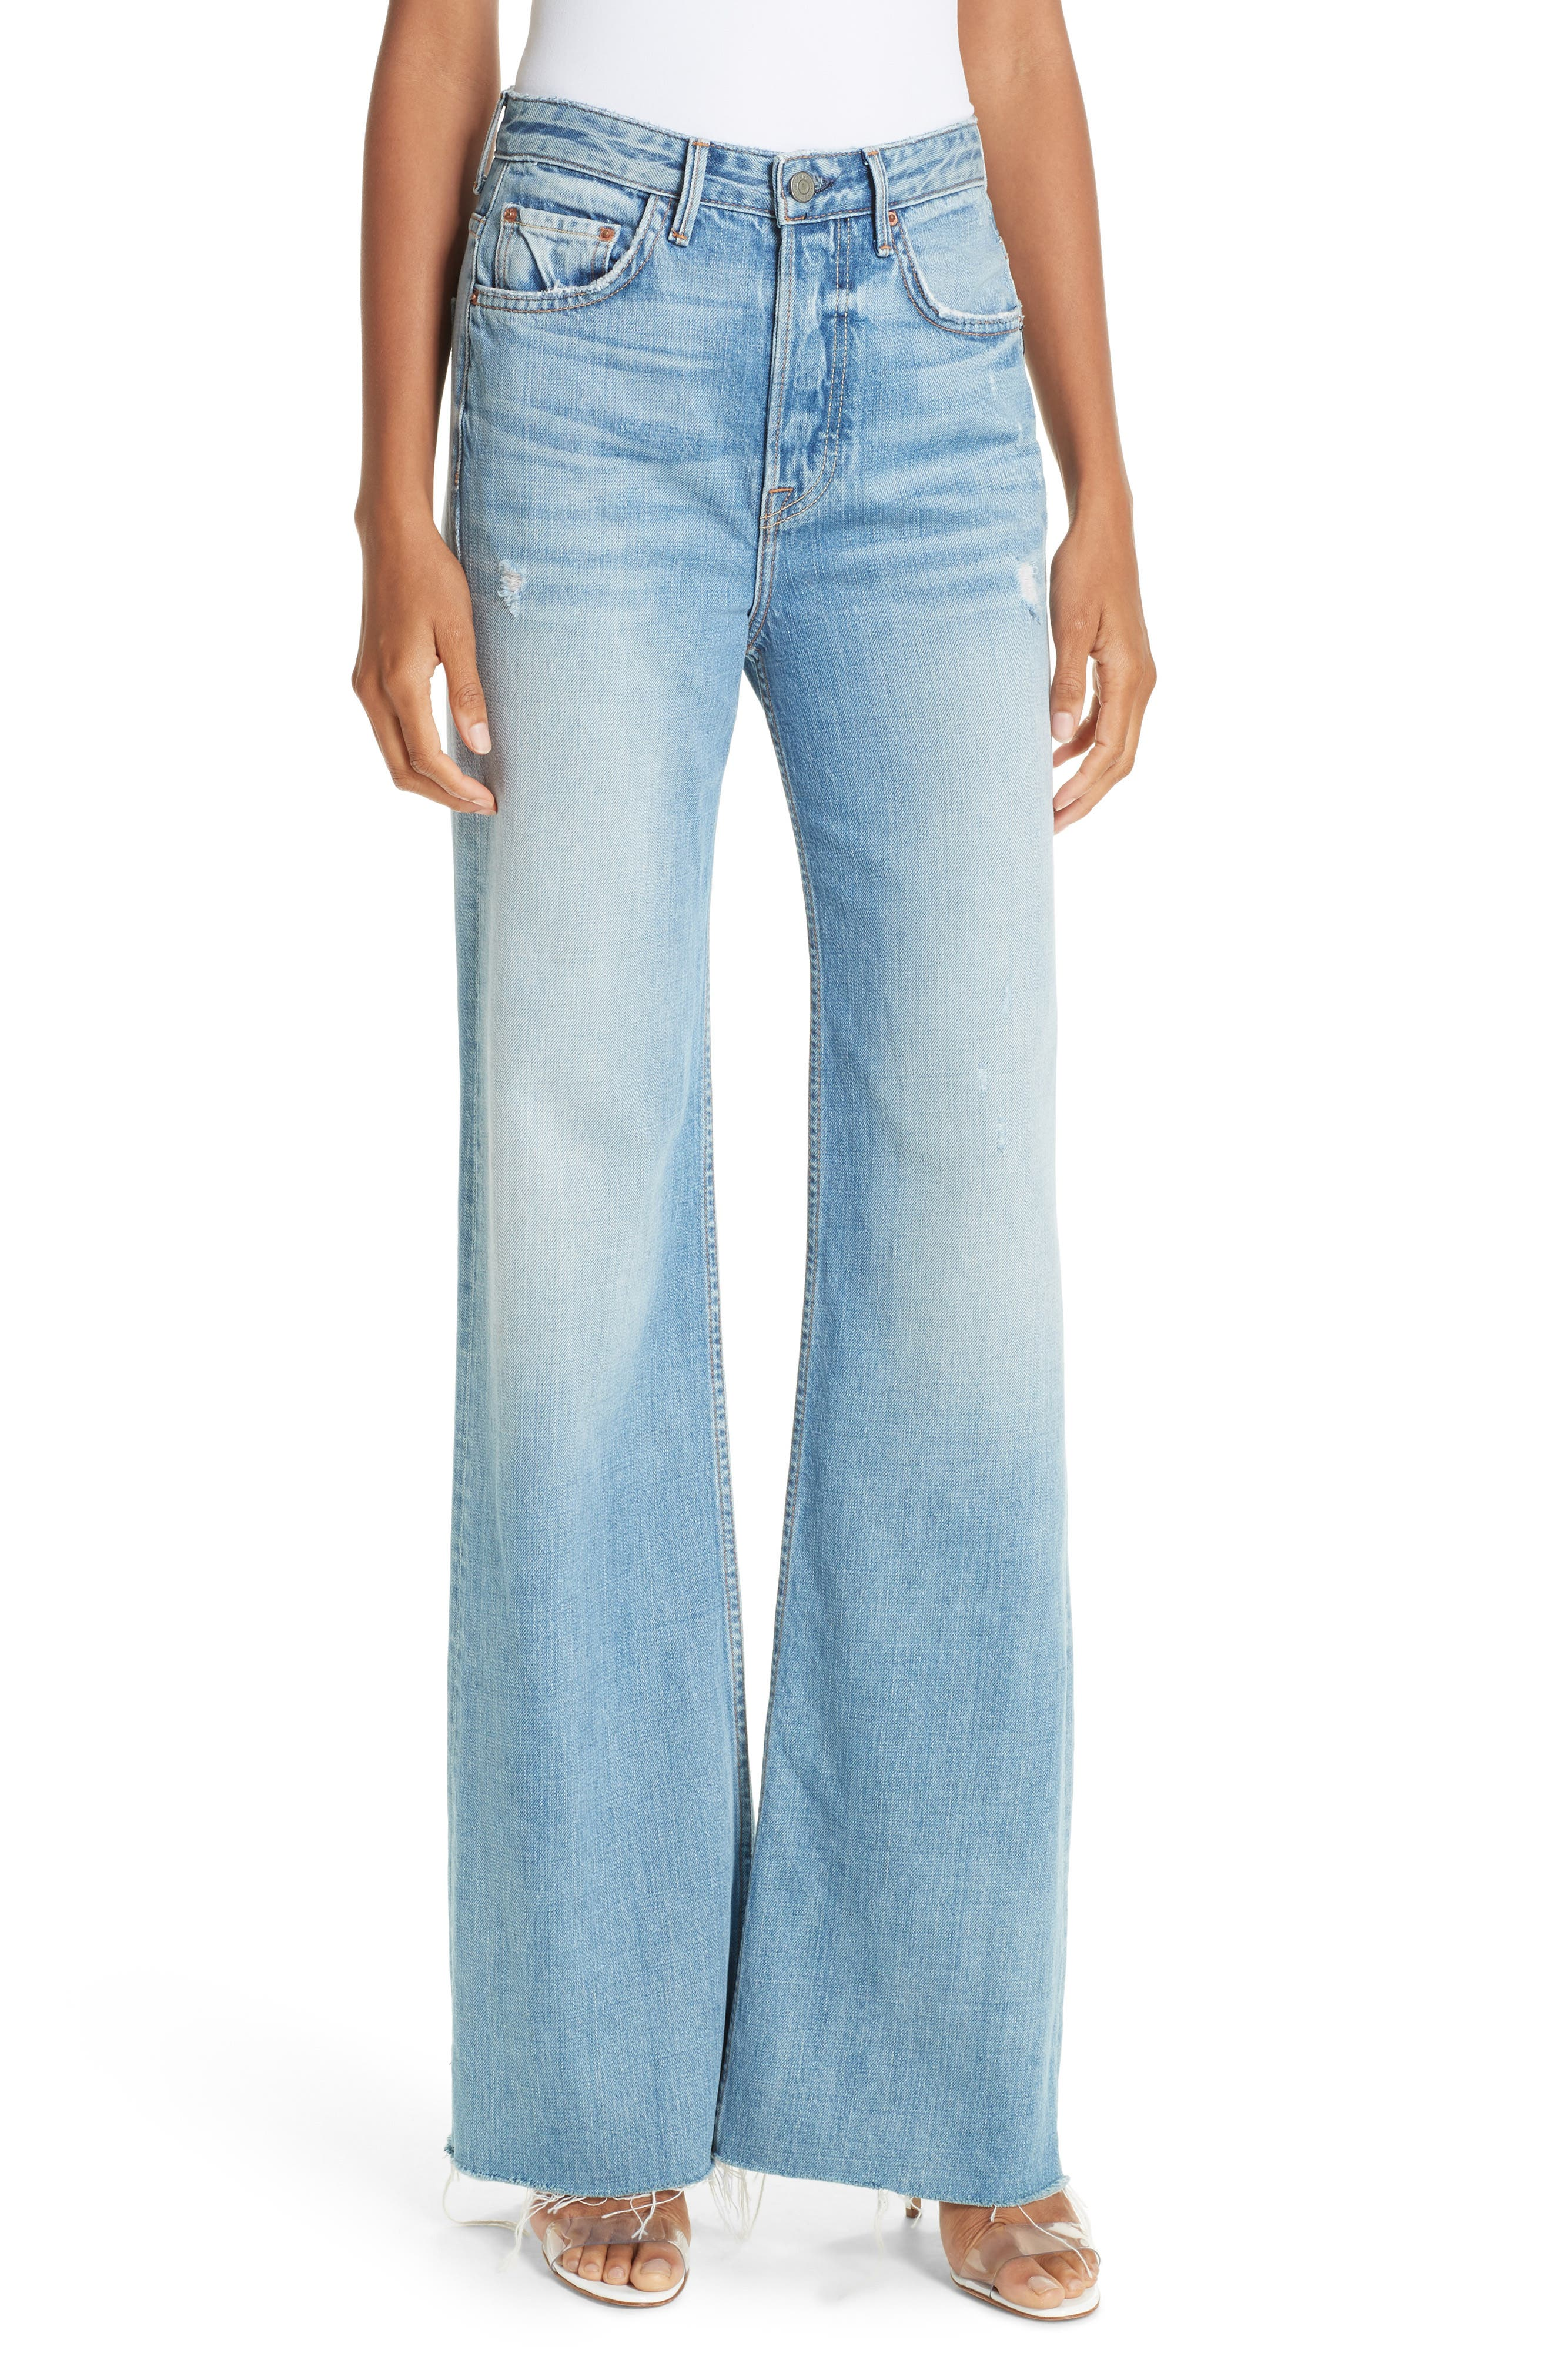 Carla Wide Leg Jeans,                             Main thumbnail 1, color,                             GONNA FLY NOW